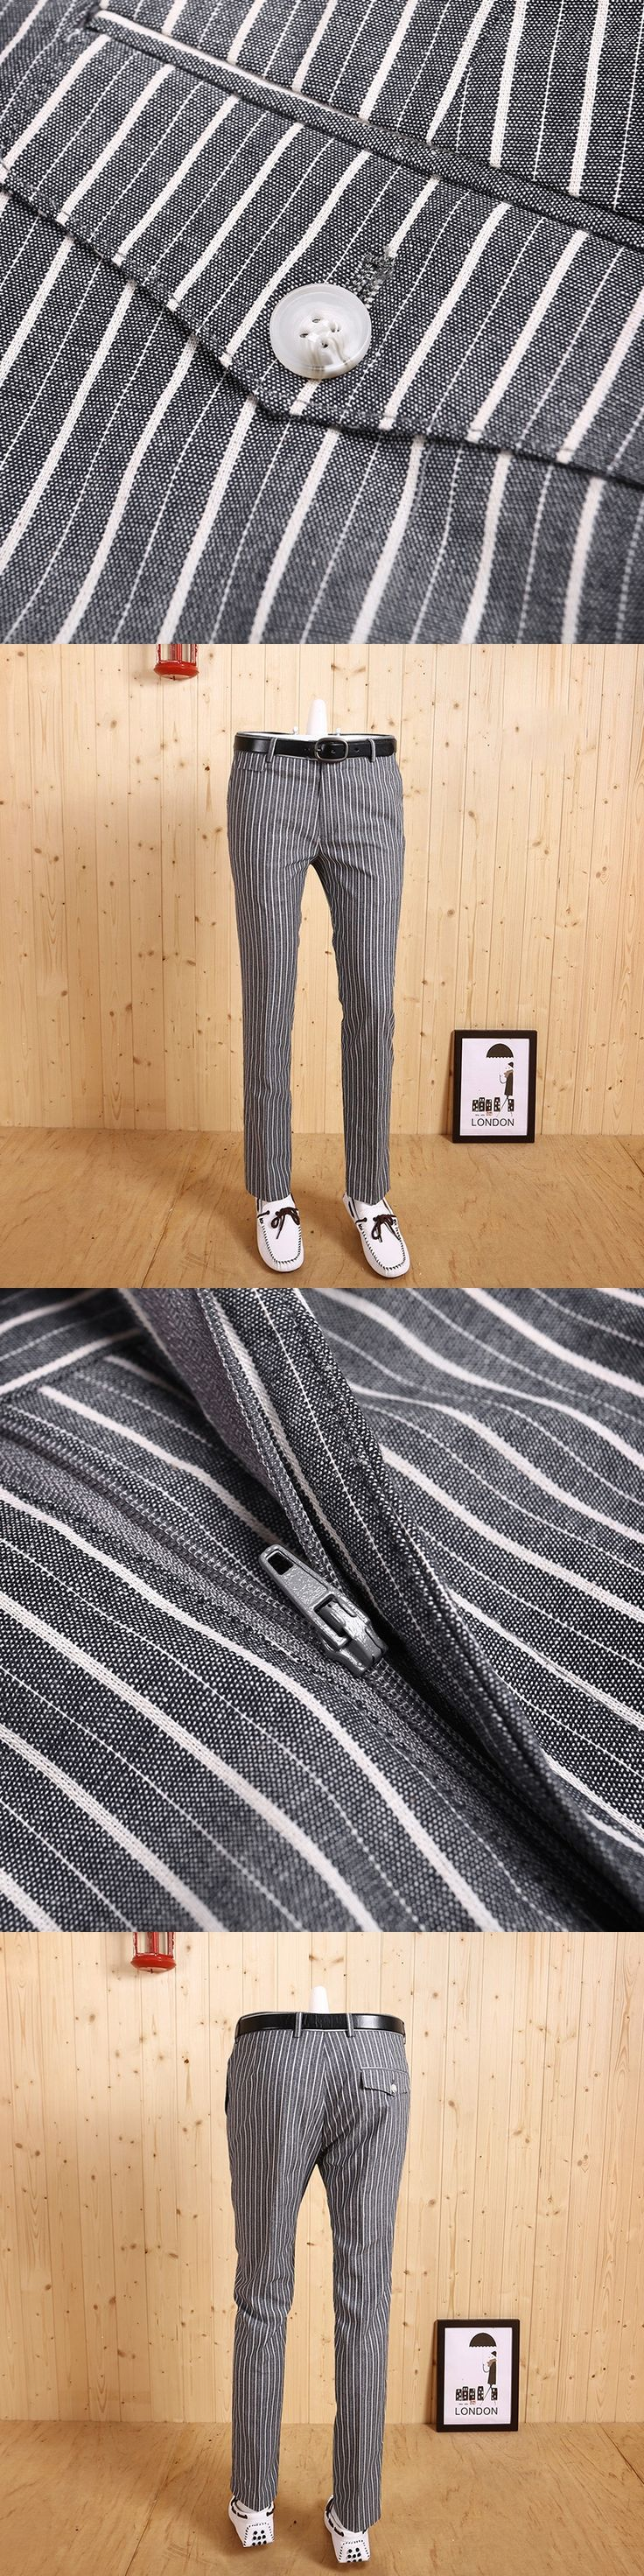 high quality 2017 men's new autumn spring slim light blue stripe fashion business wedding groom suits long pants casual pant